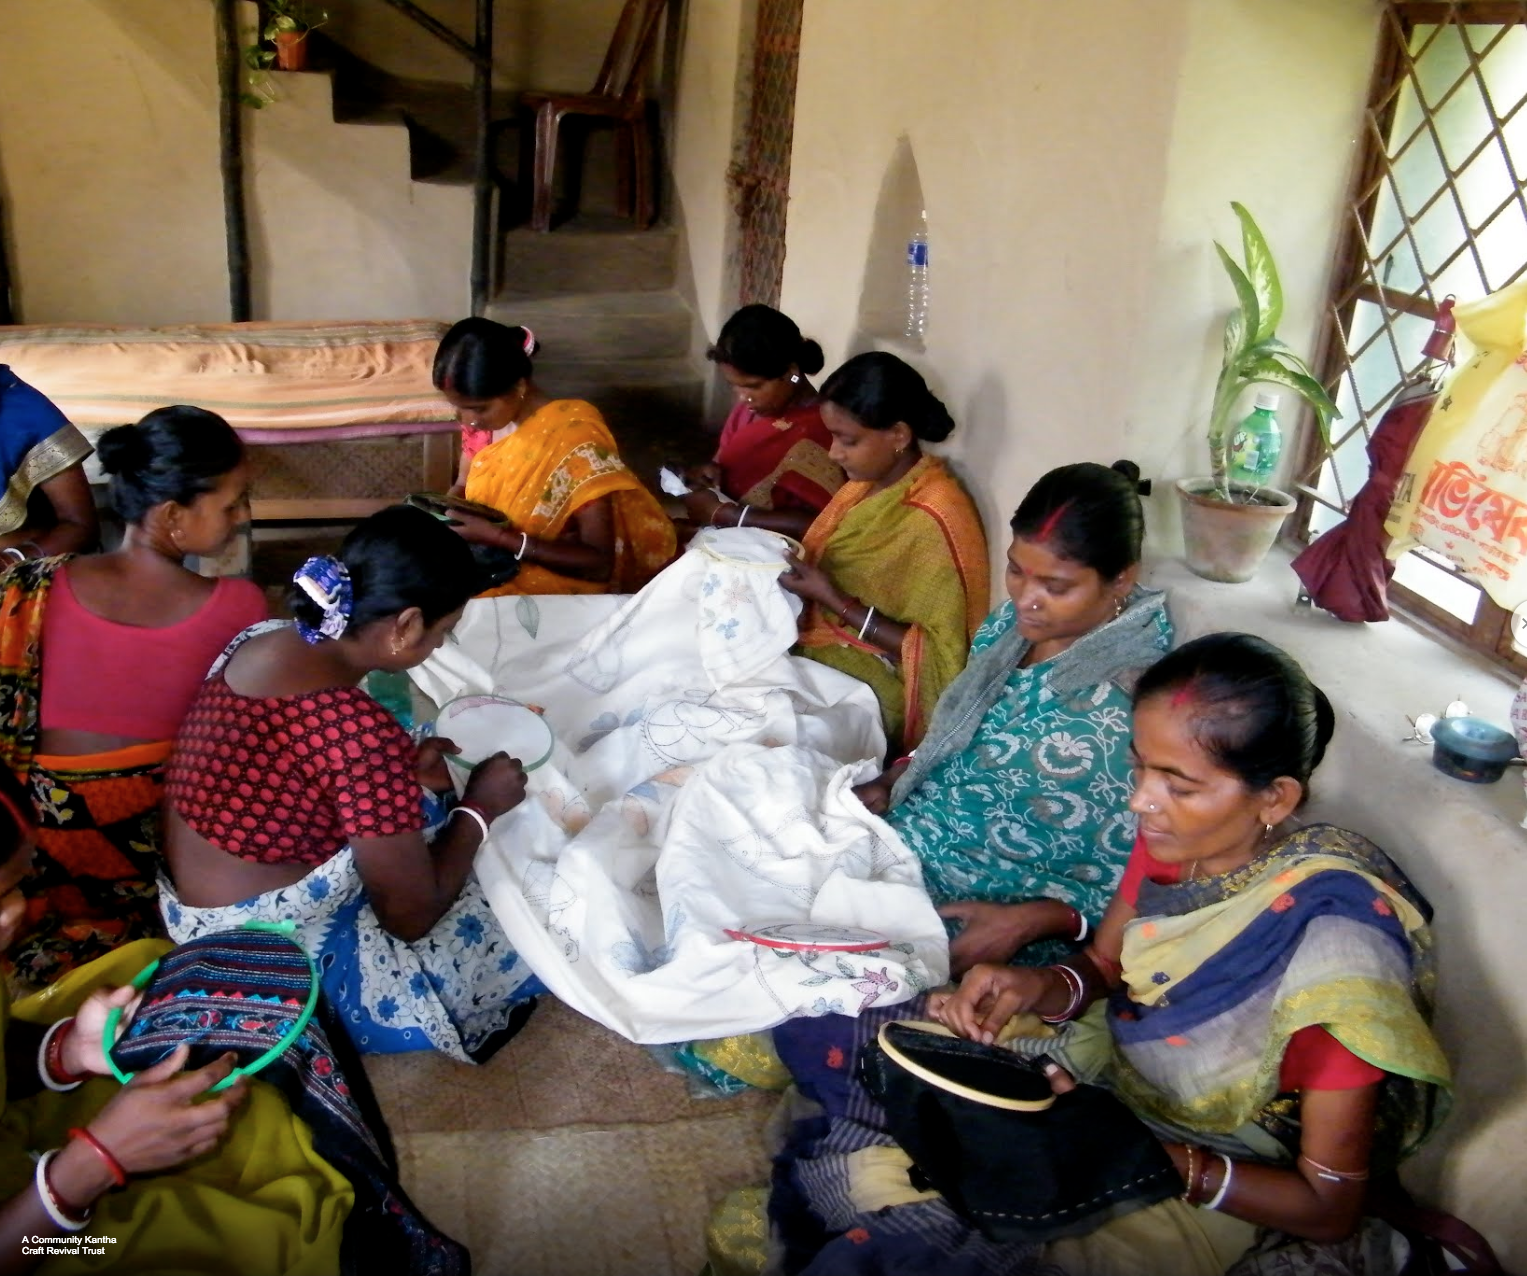 Women stitching  Kantha  garments in a village in West Bengal, India. Pic courtesy: Google Arts & Culture